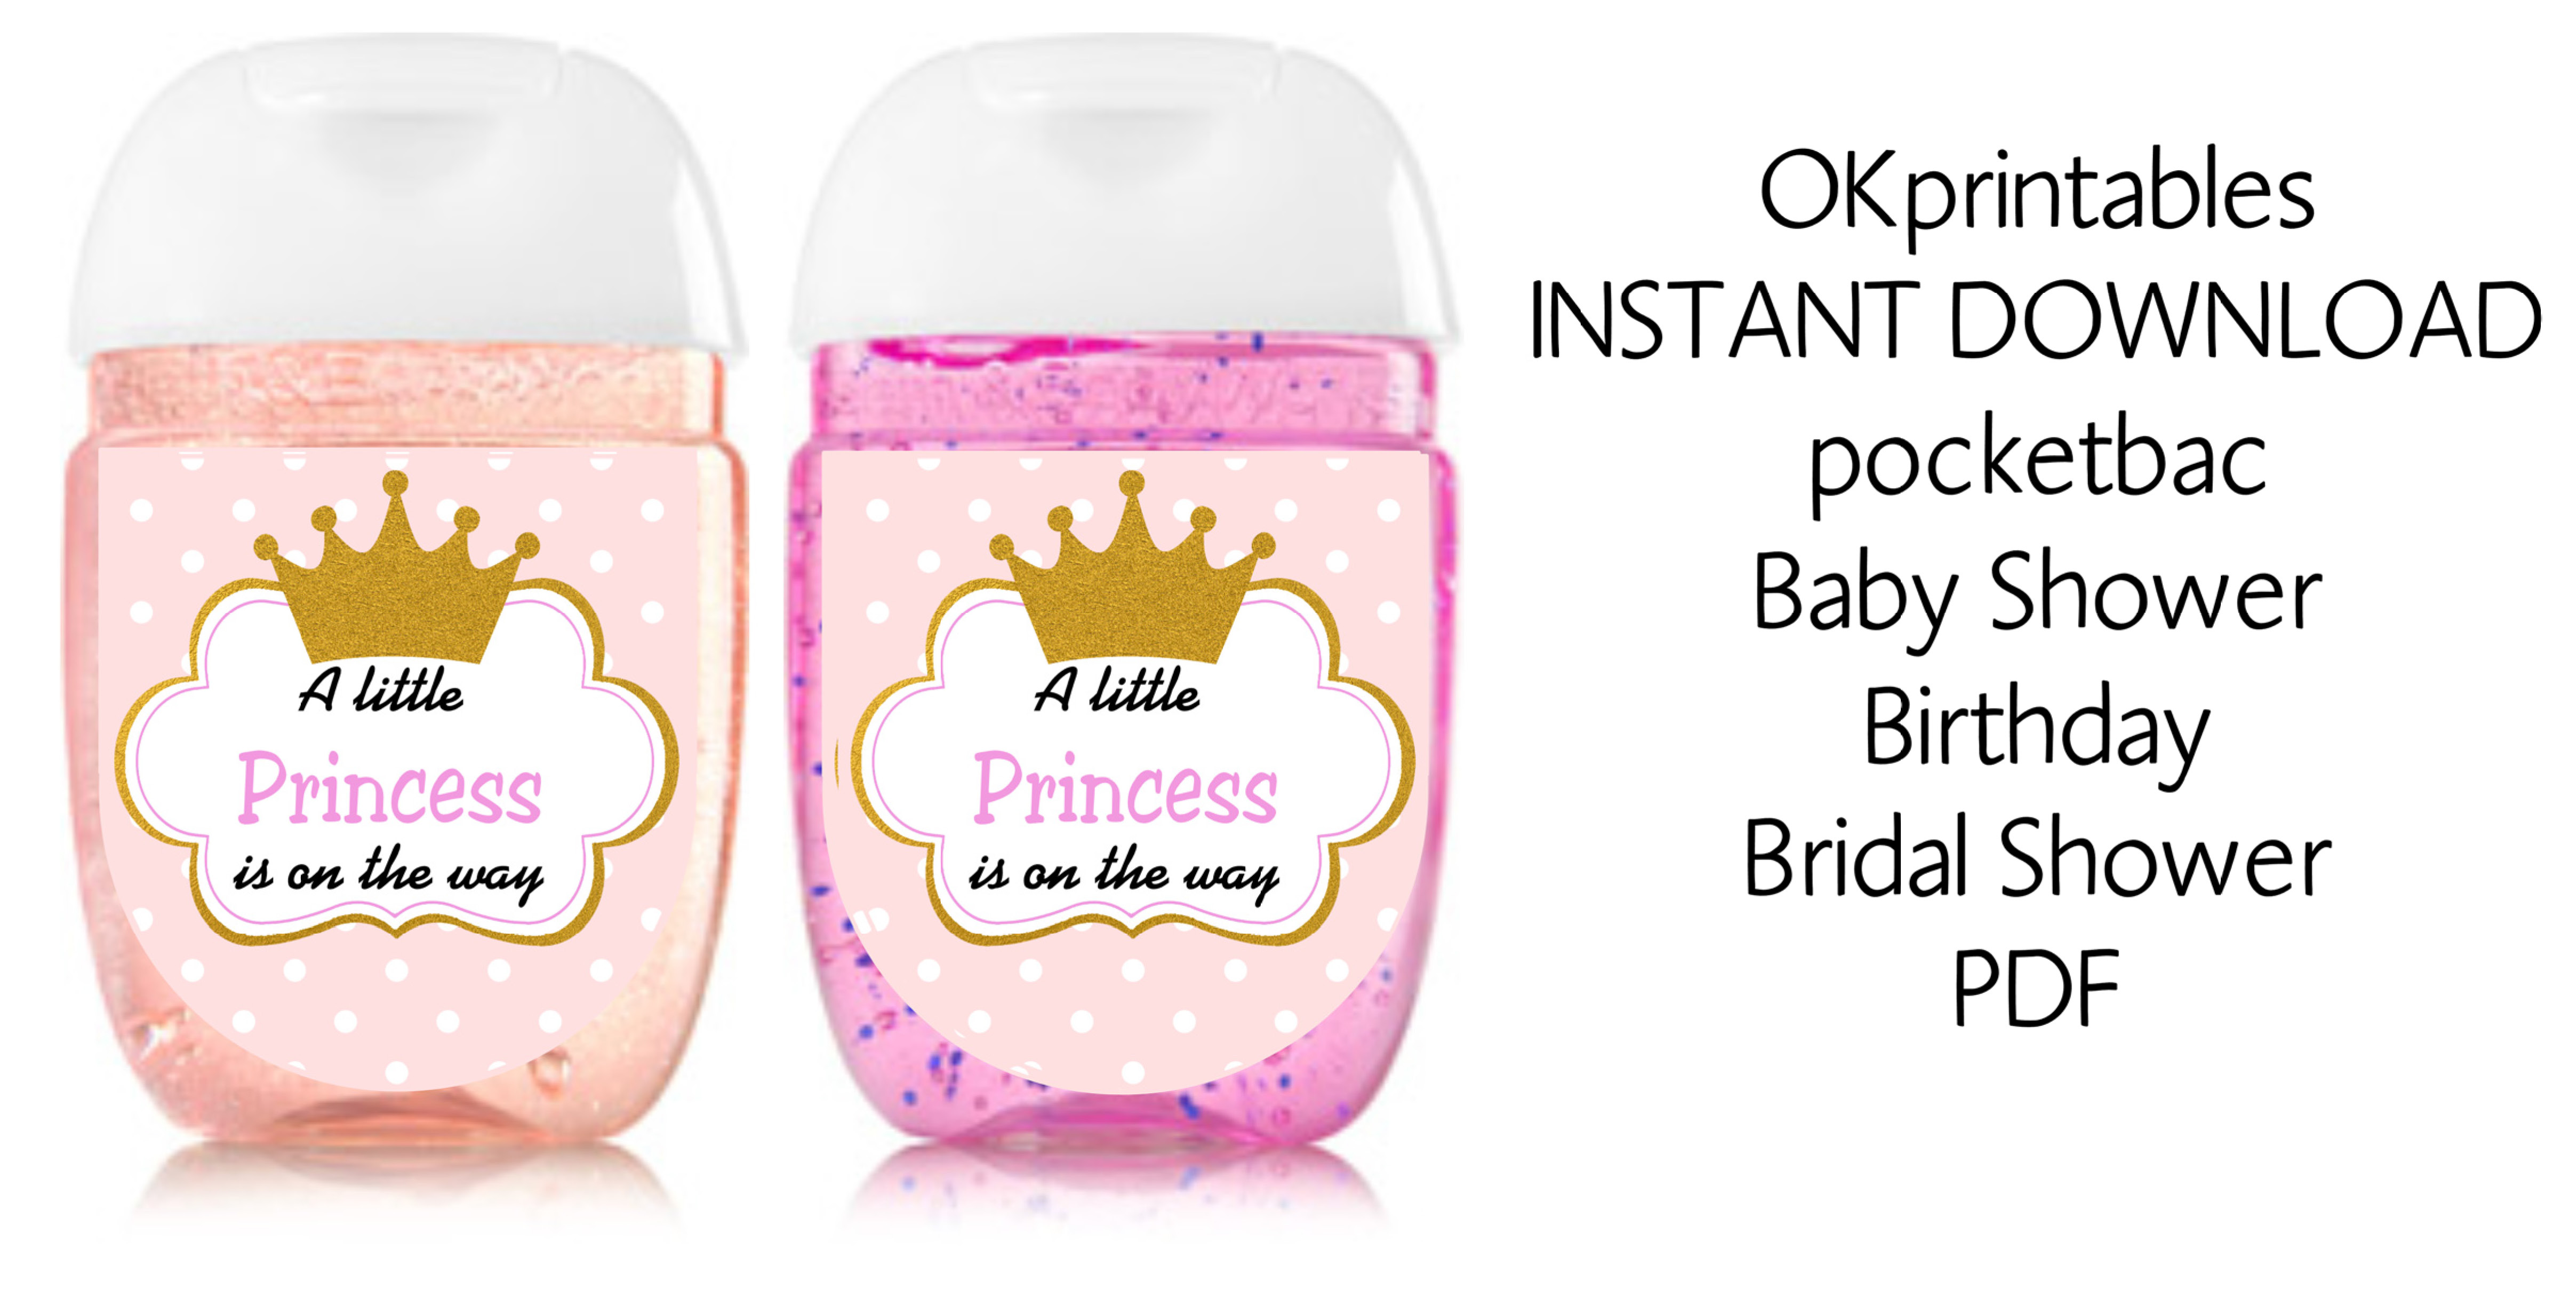 A little Princes is on the way Baby SHower mini hand sanitizer label,  Princess Hand sanitizer label 1oz, pdf - Bridal, baby shower, birthday sold  by